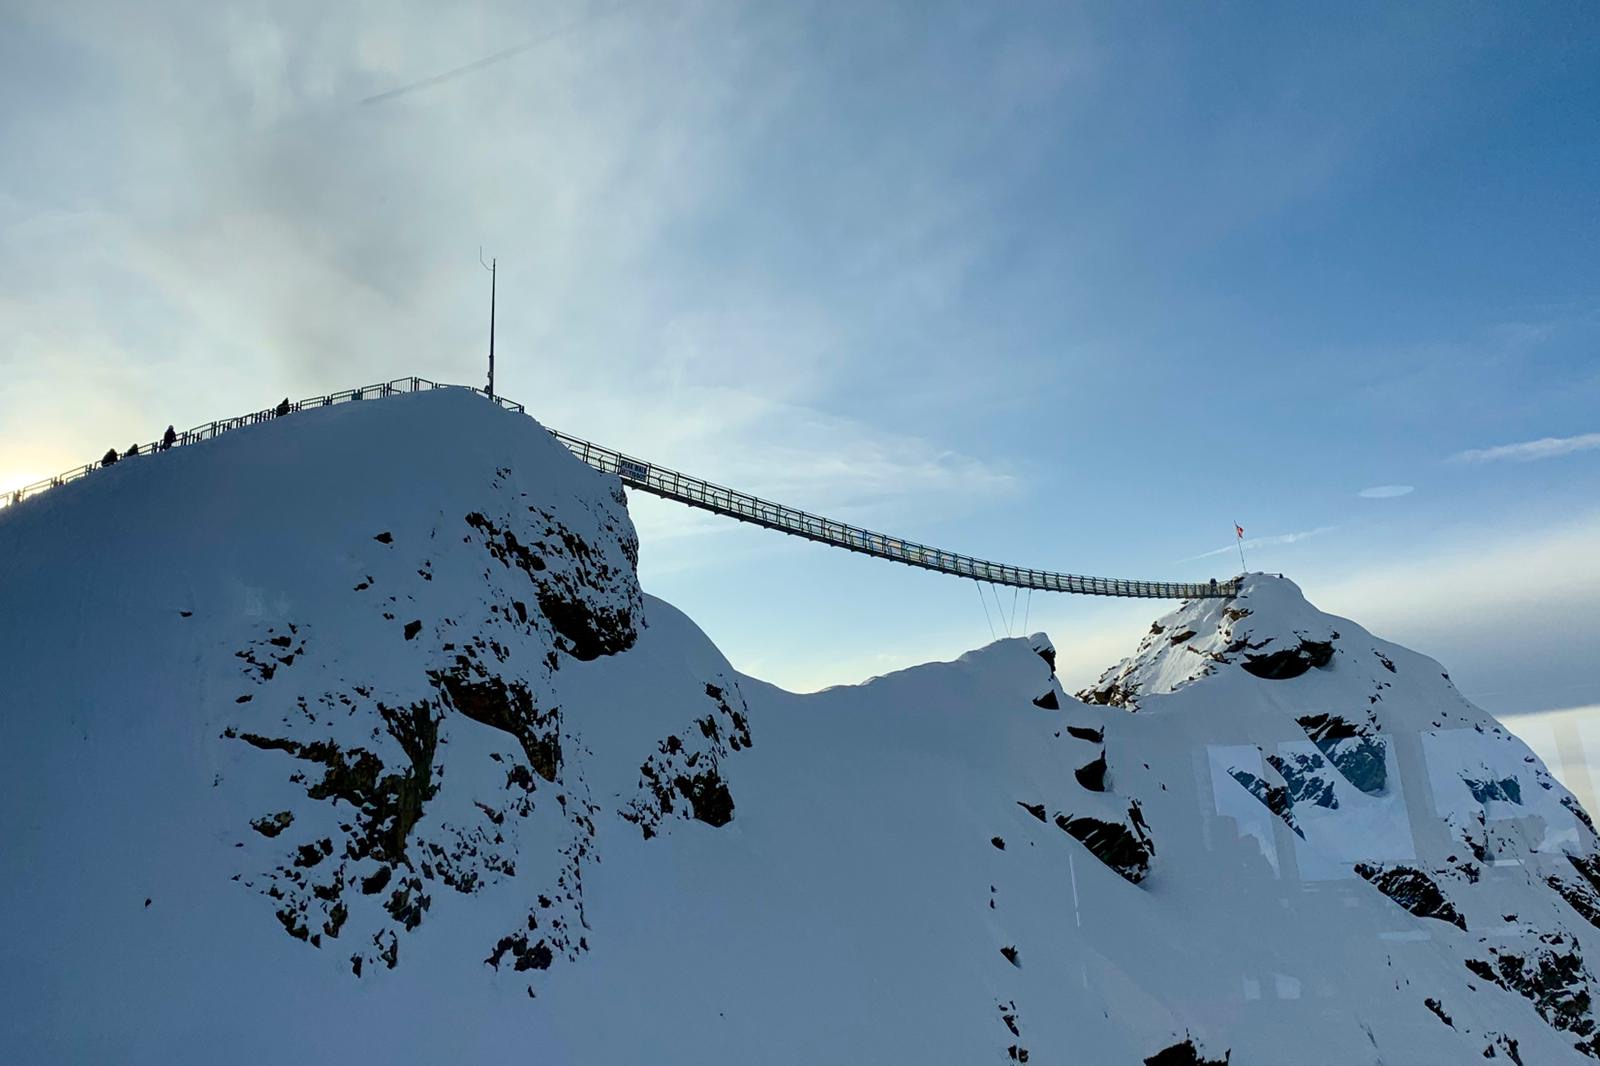 The world's first - and only - peak to peak suspension bridge in the world at Glacier 3000 in Switzerland.